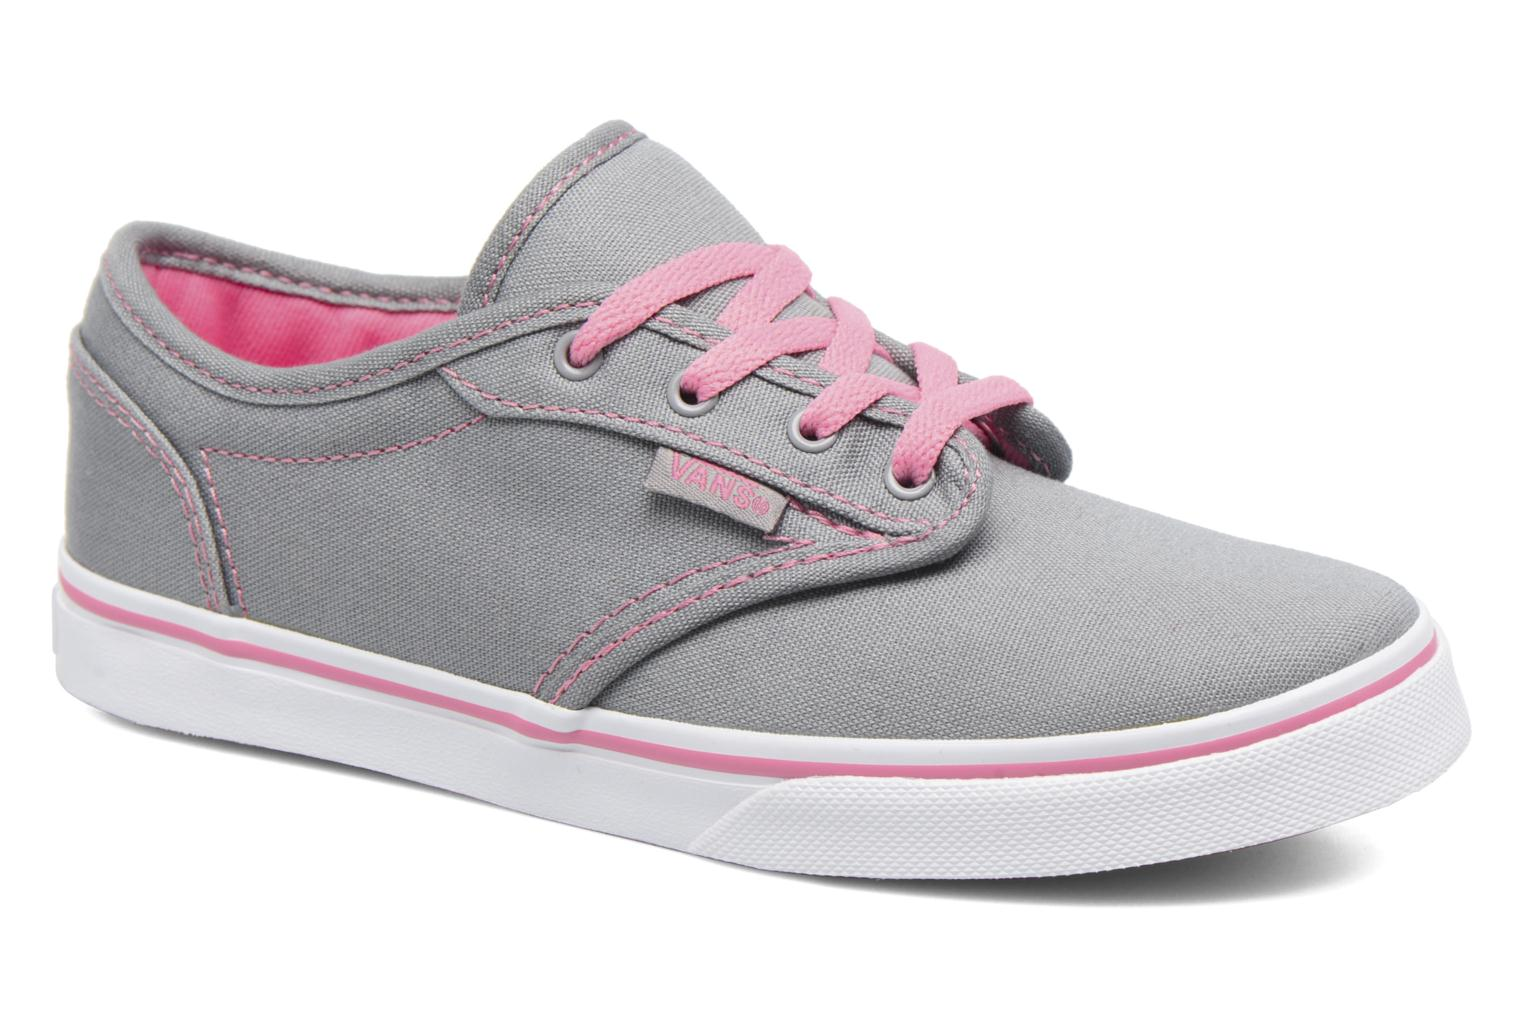 Atwood Deluxe Grey/Pink lLemona